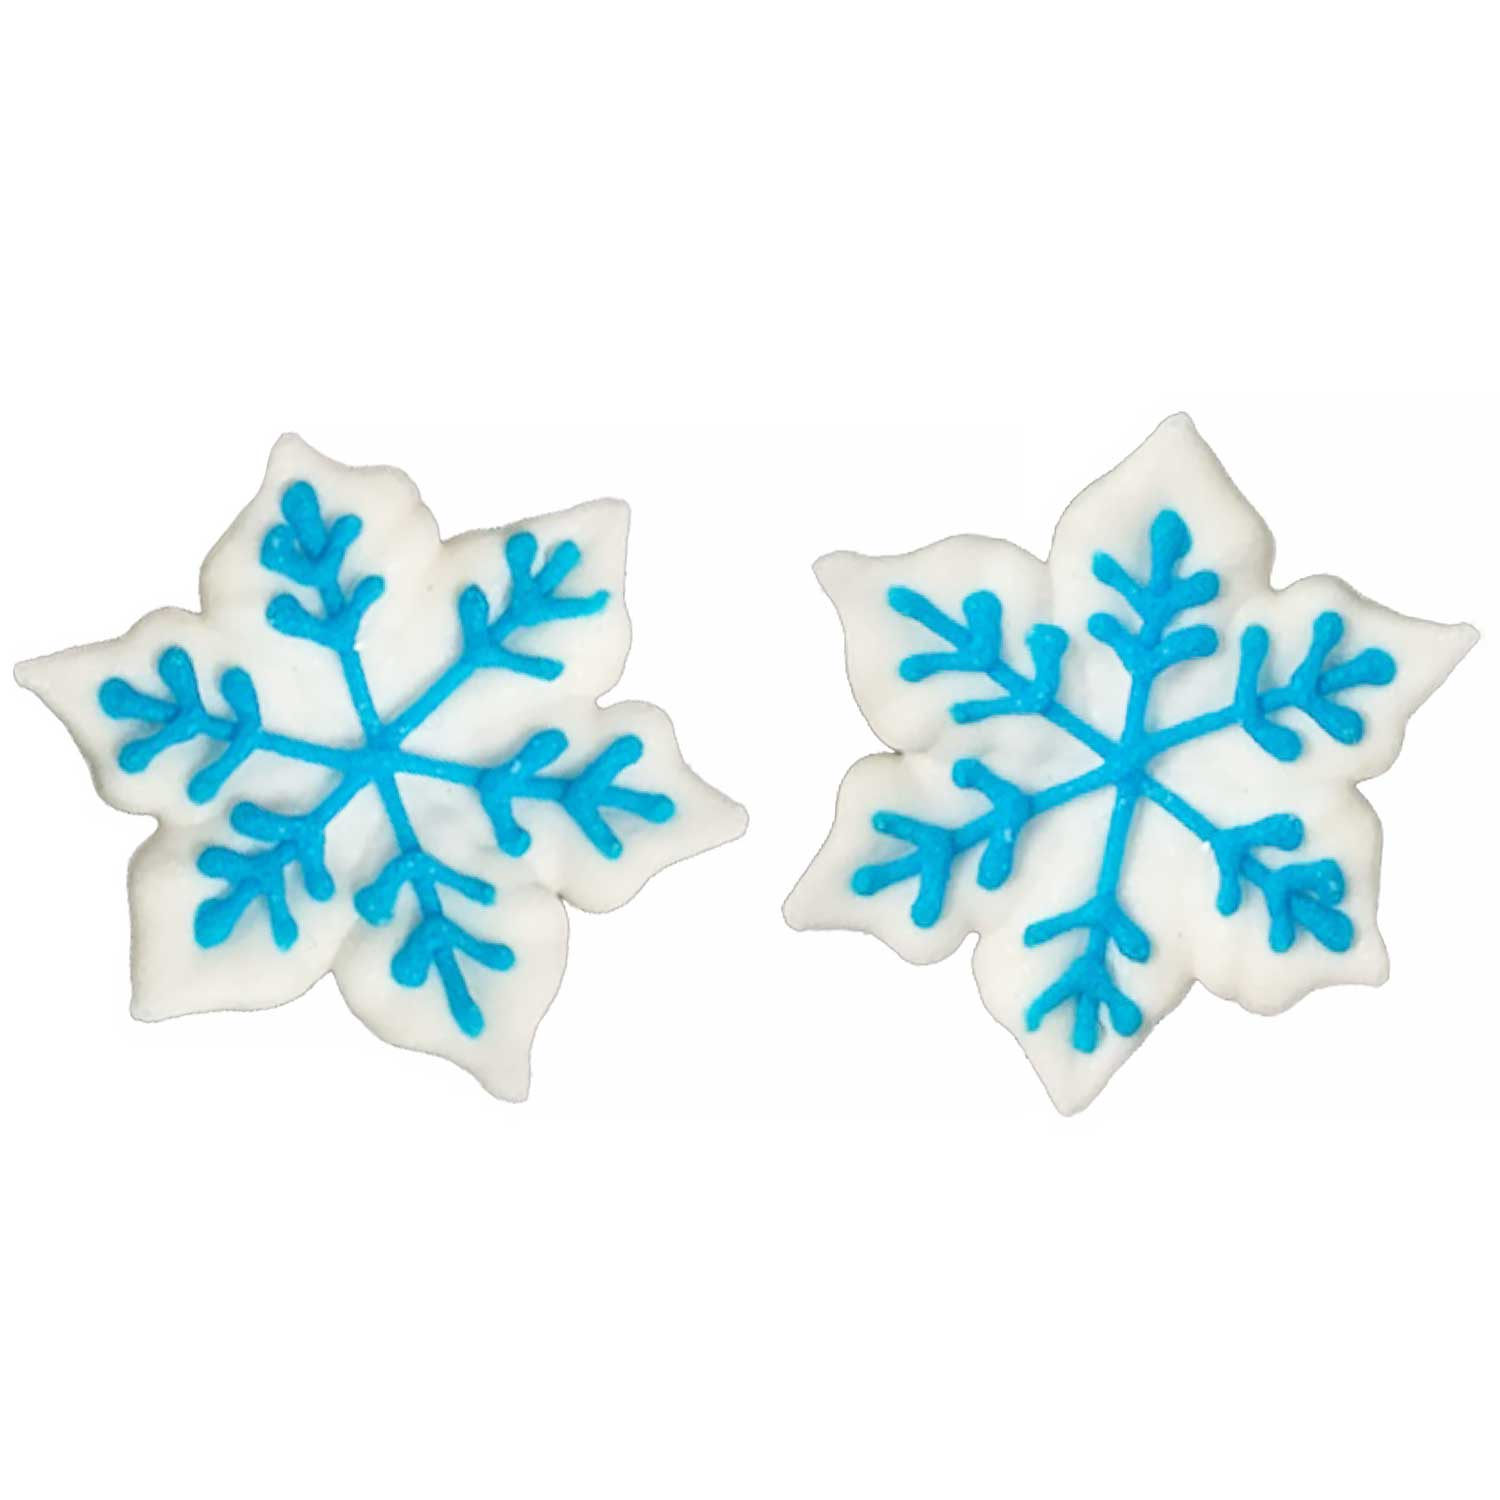 Icing Layons - Snowflakes with Blue Trim